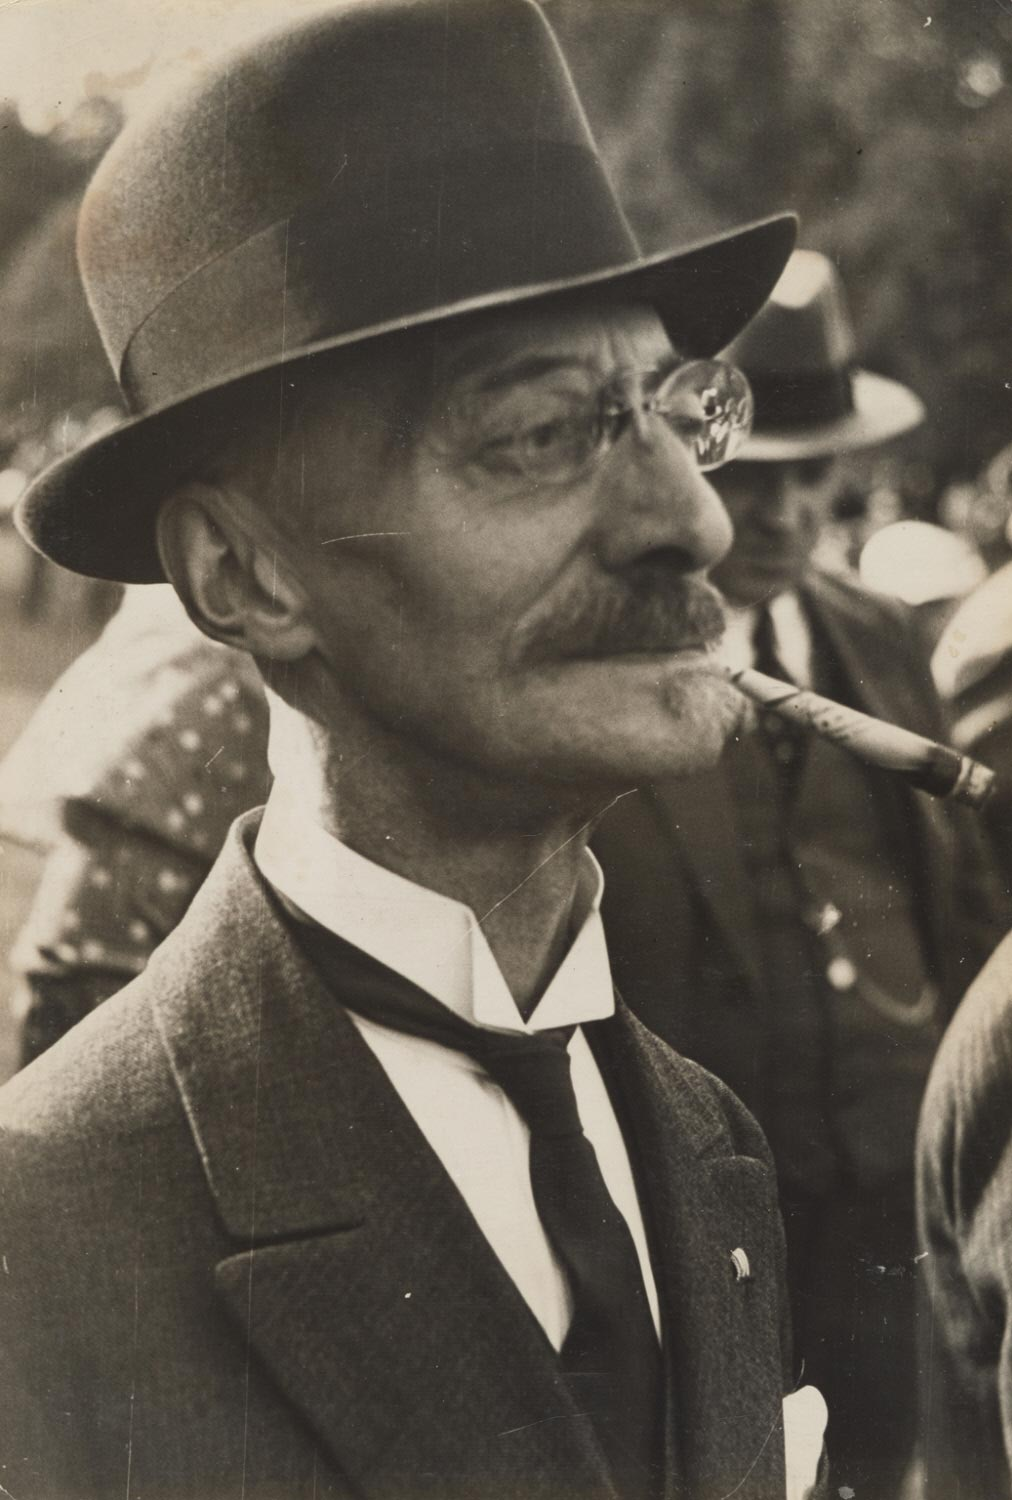 Man with Cigar at an Outdoor Event